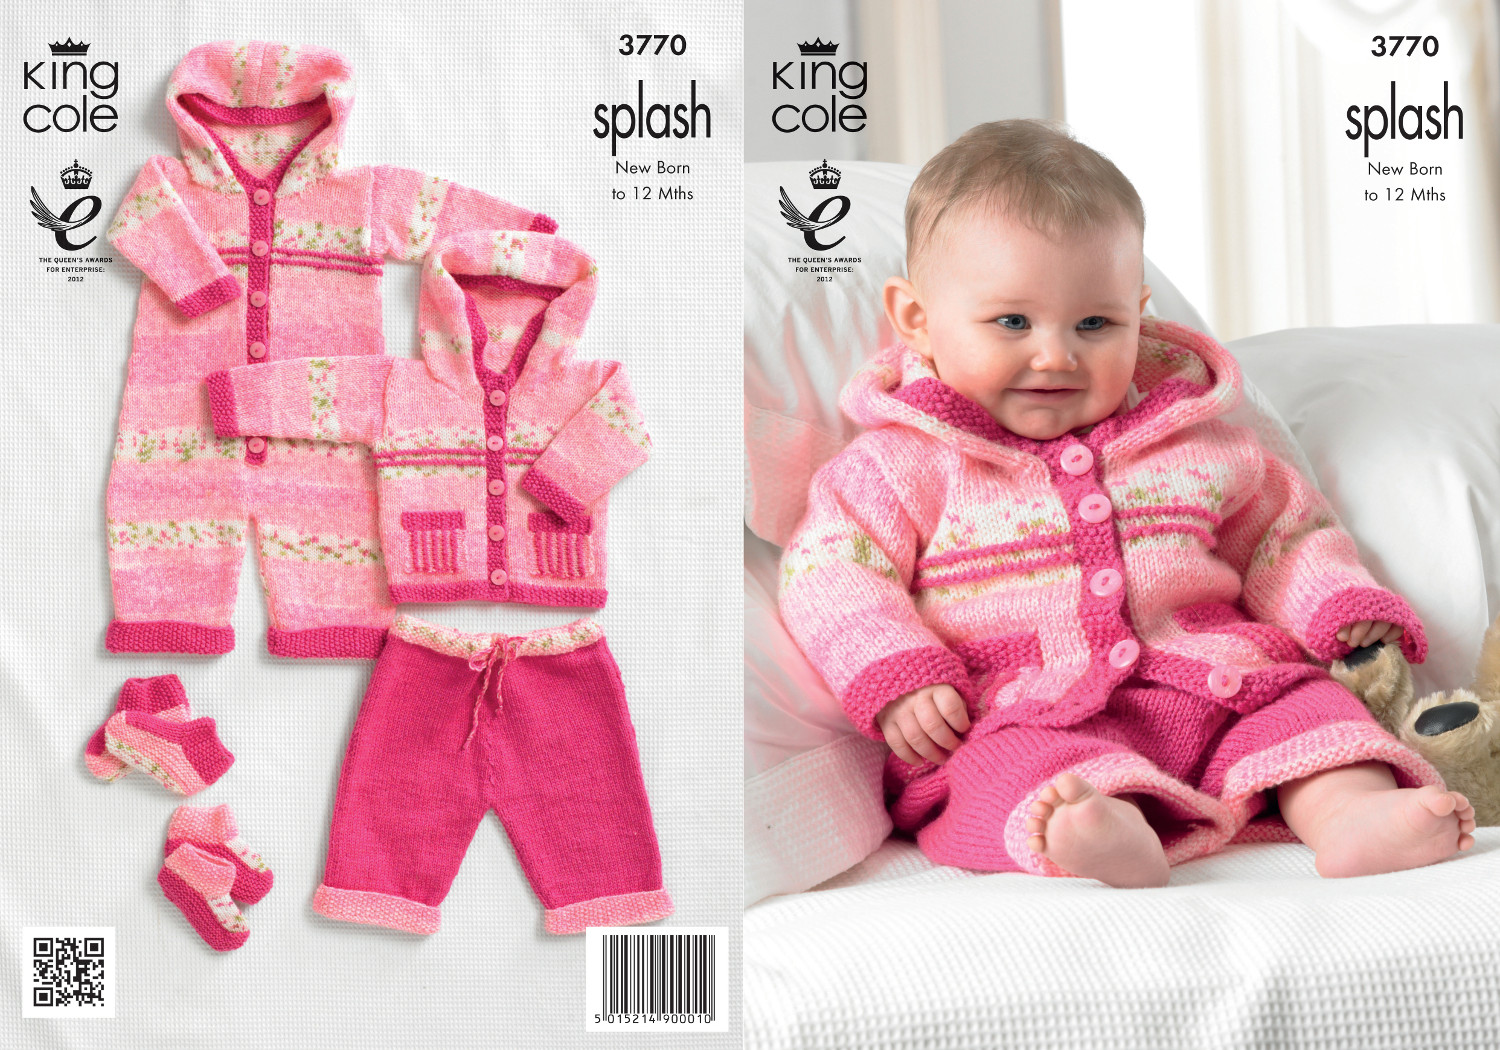 Knitting Pattern Baby All In One : King Cole Double Knitting Pattern Baby Splash DK Coat ...